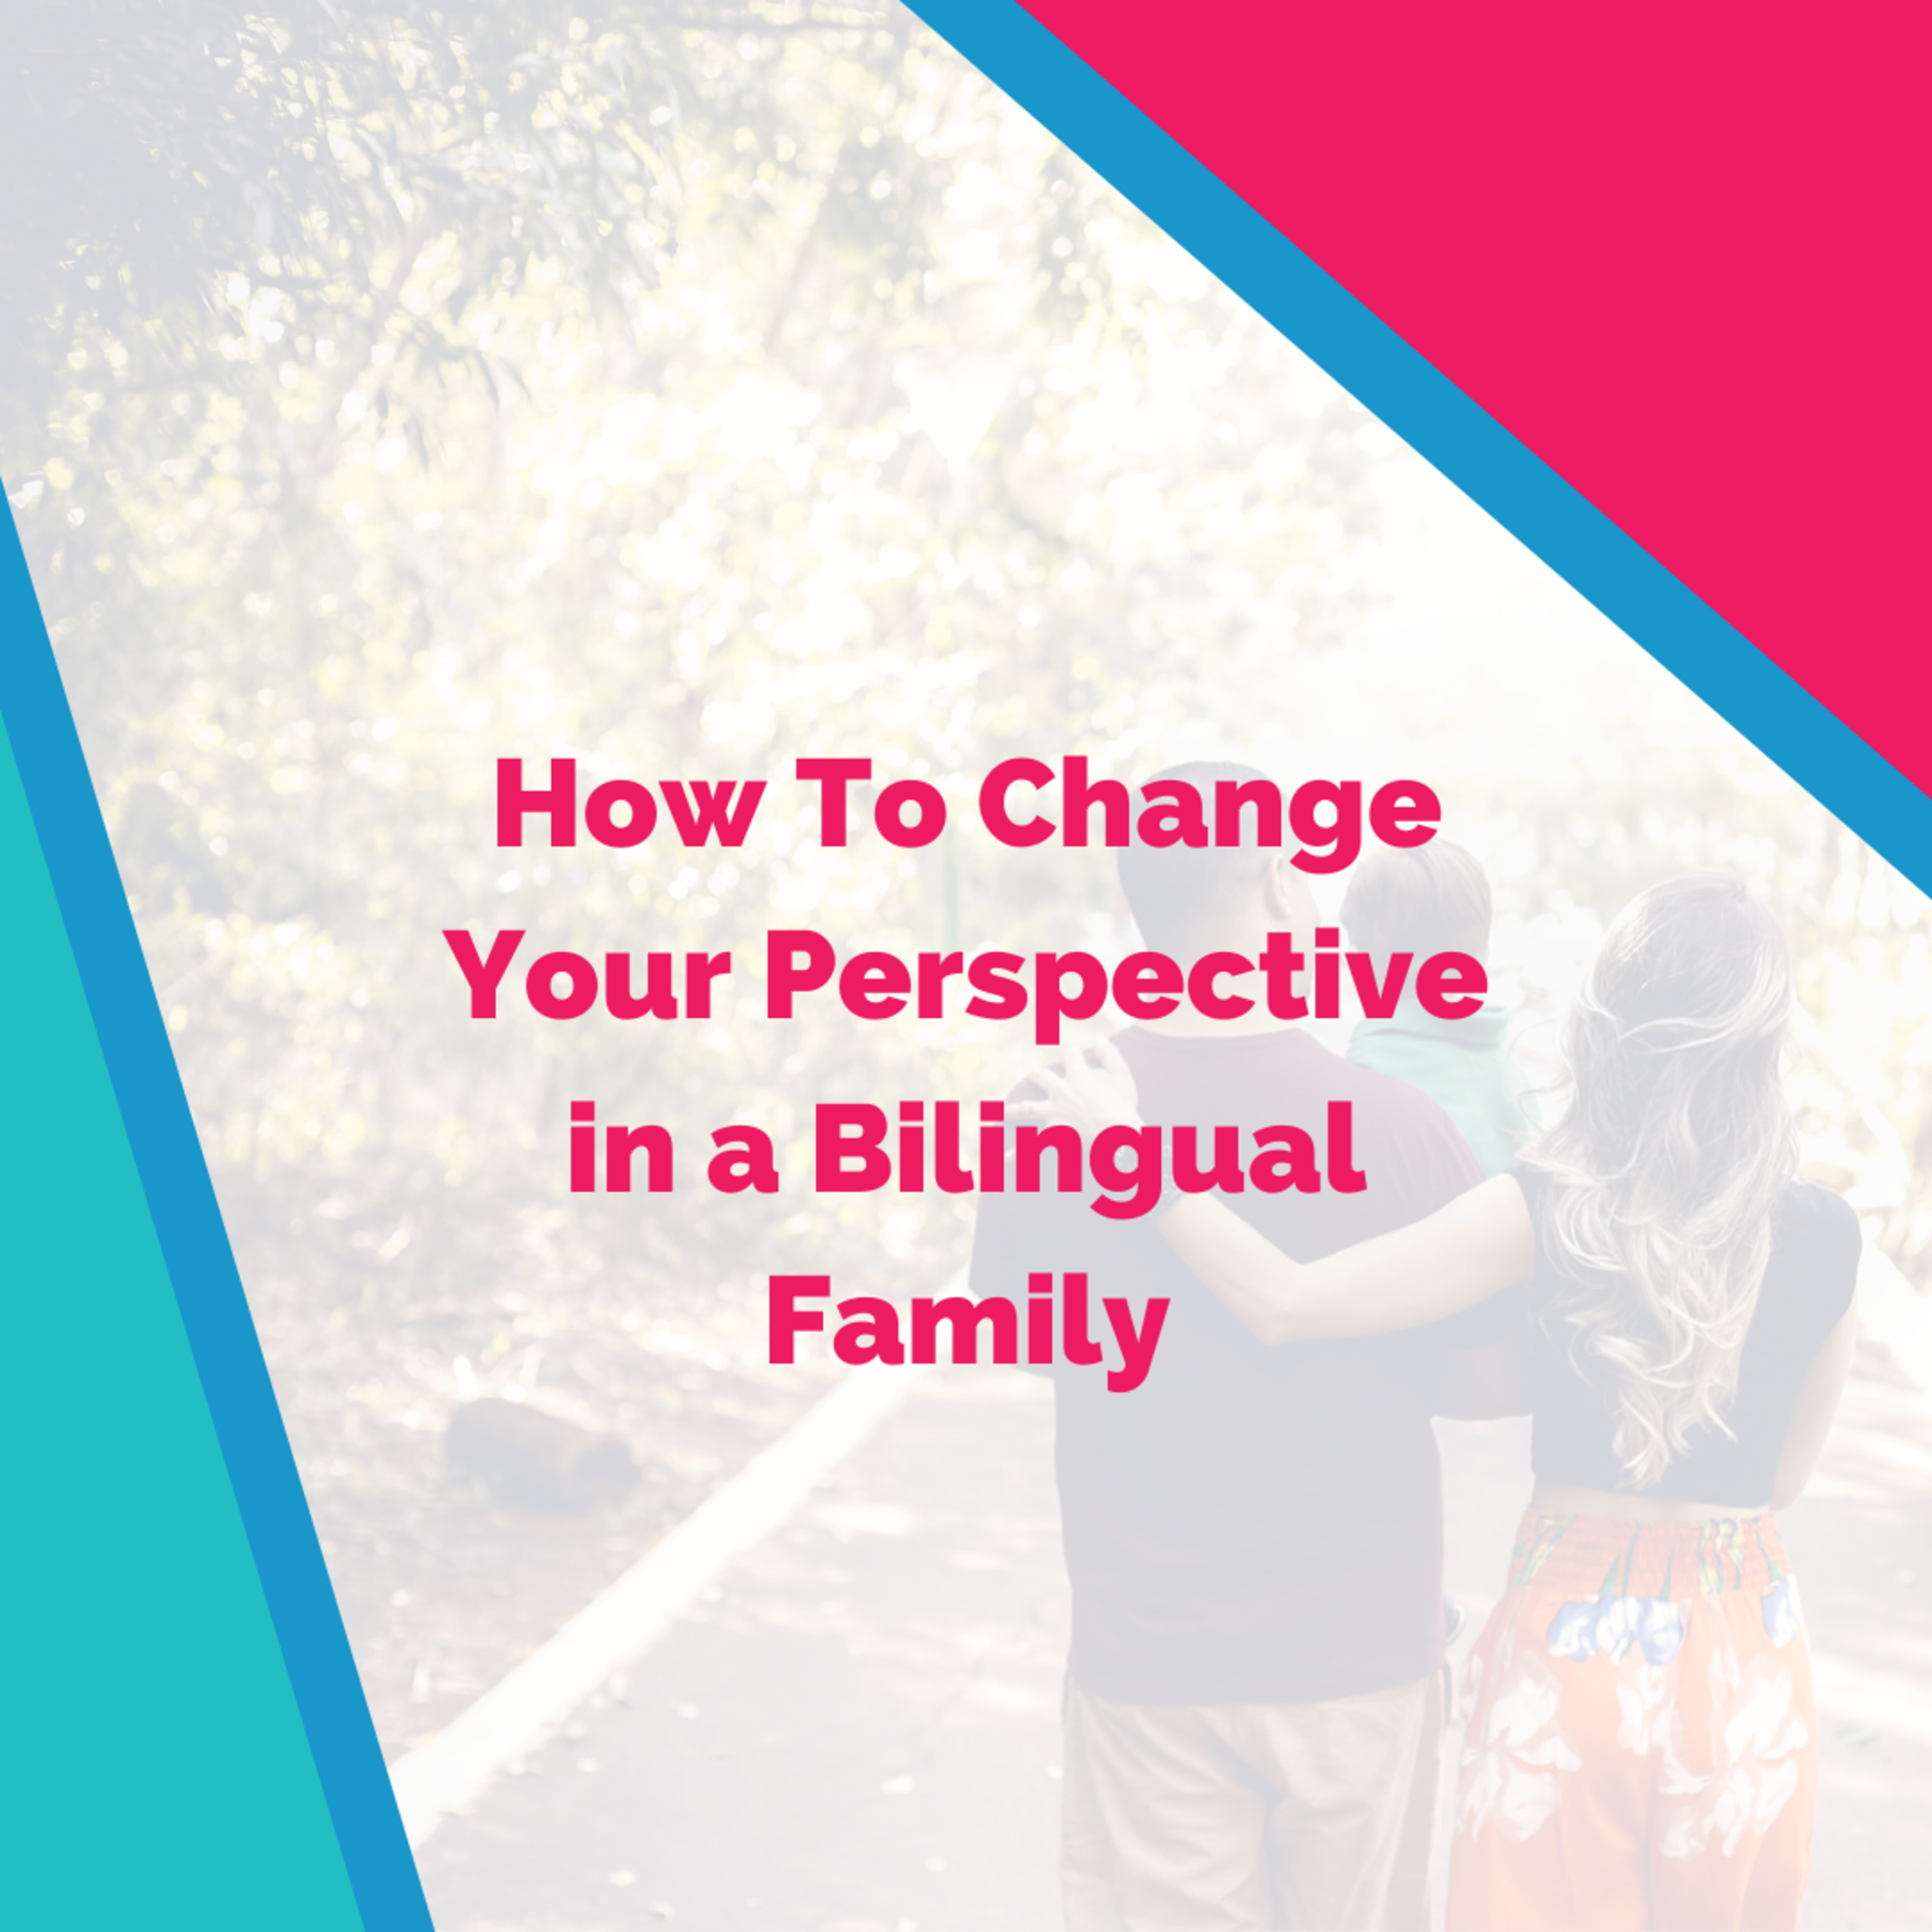 How To Navigate Bilingual Love and Change Your Family Perspective